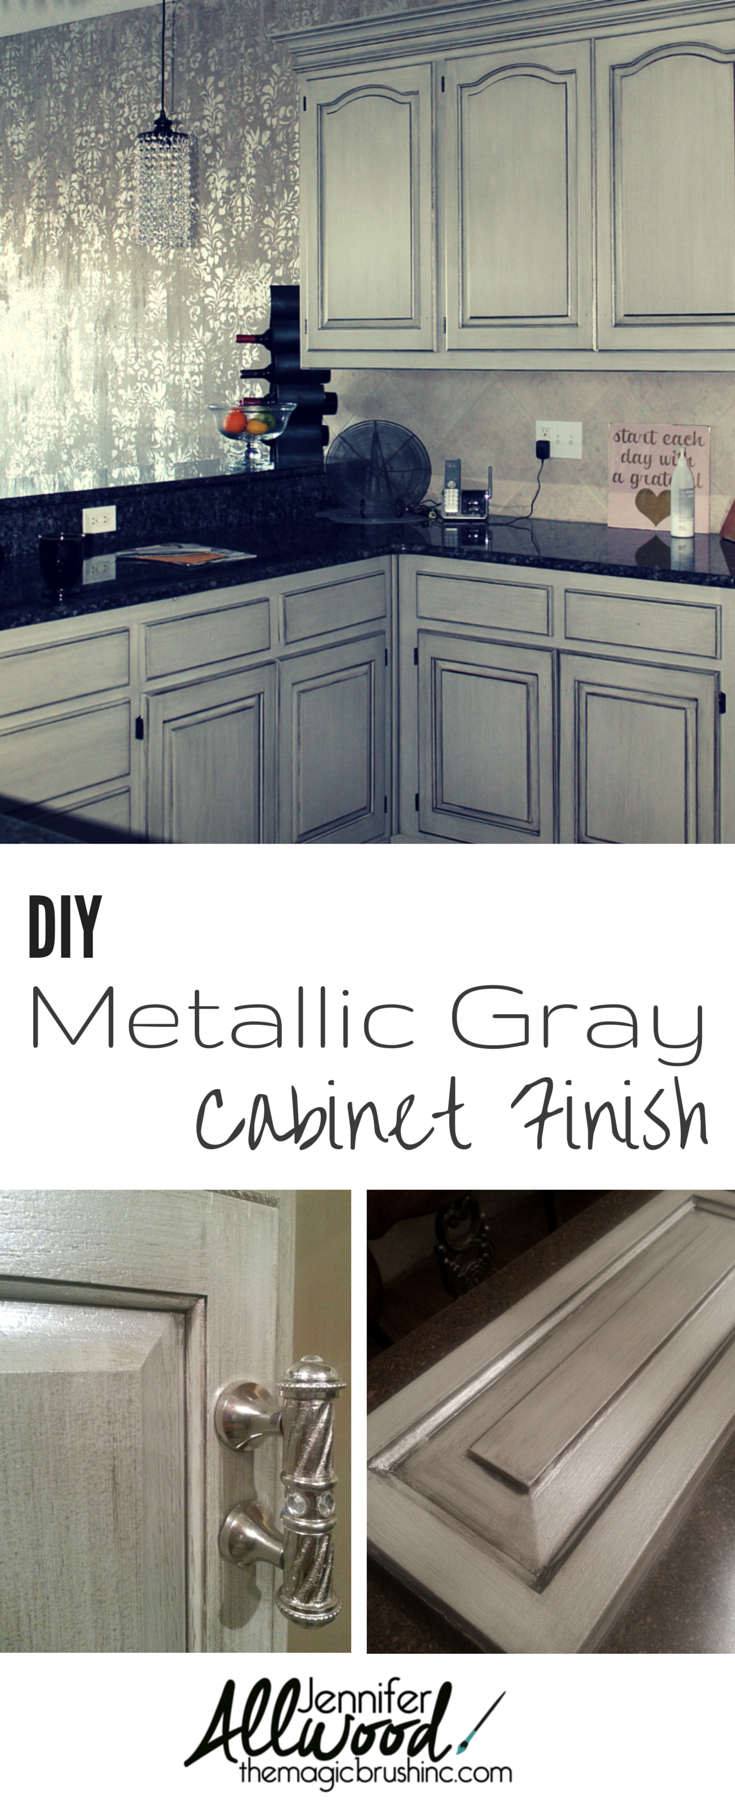 Cabinets And Garage Doors The Magic Brush Inc Glazed Kitchen Cabinets Home Home Remodeling